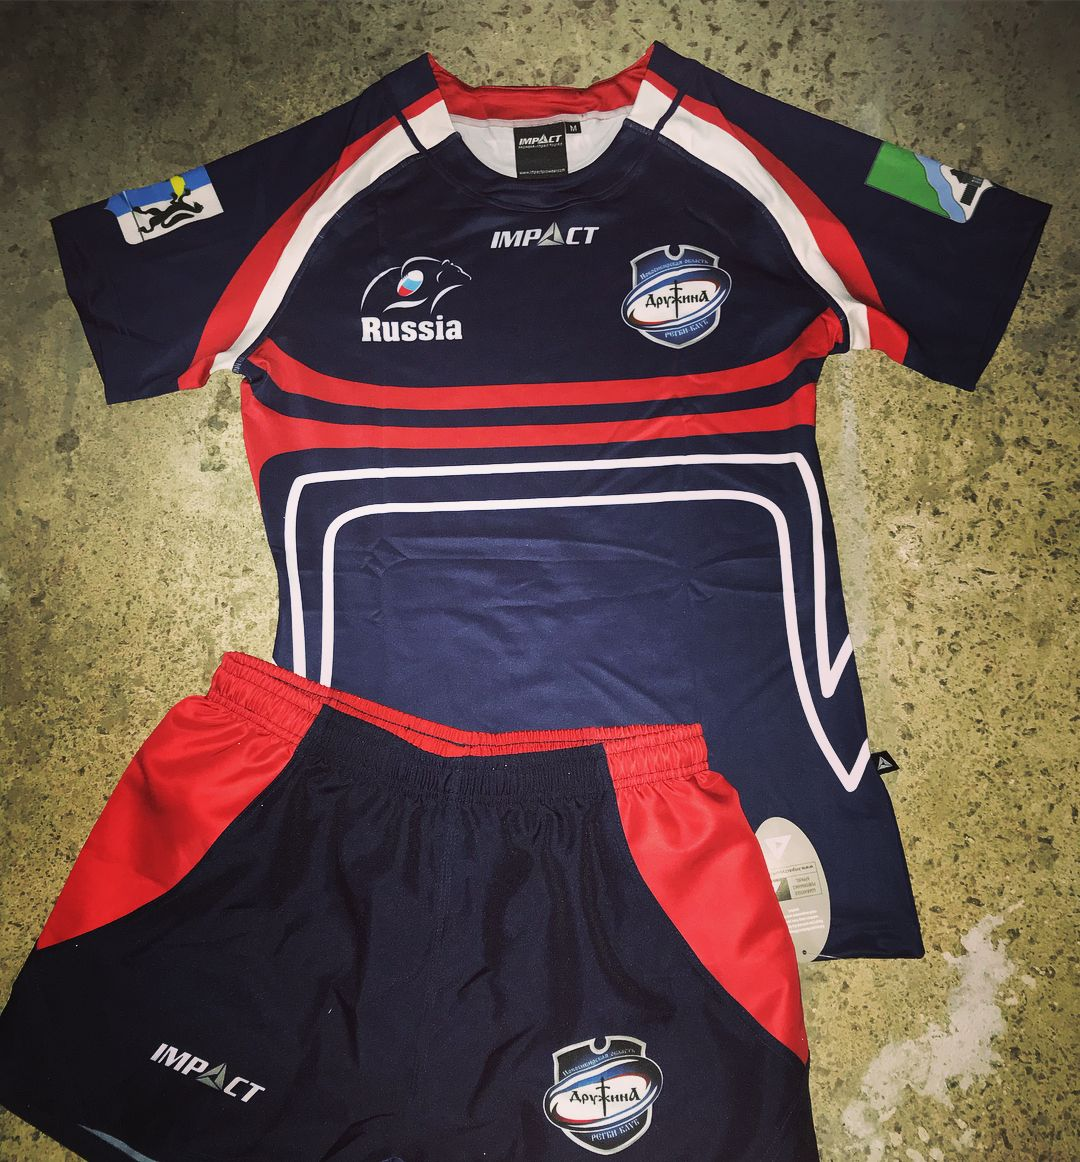 Check Out The Kits For The Newest Team In Siberia Official Rur Rugby Best Of Luck For The Season Boys Www Impactp In 2020 Gym Shorts Womens Gym Women Womens Shorts